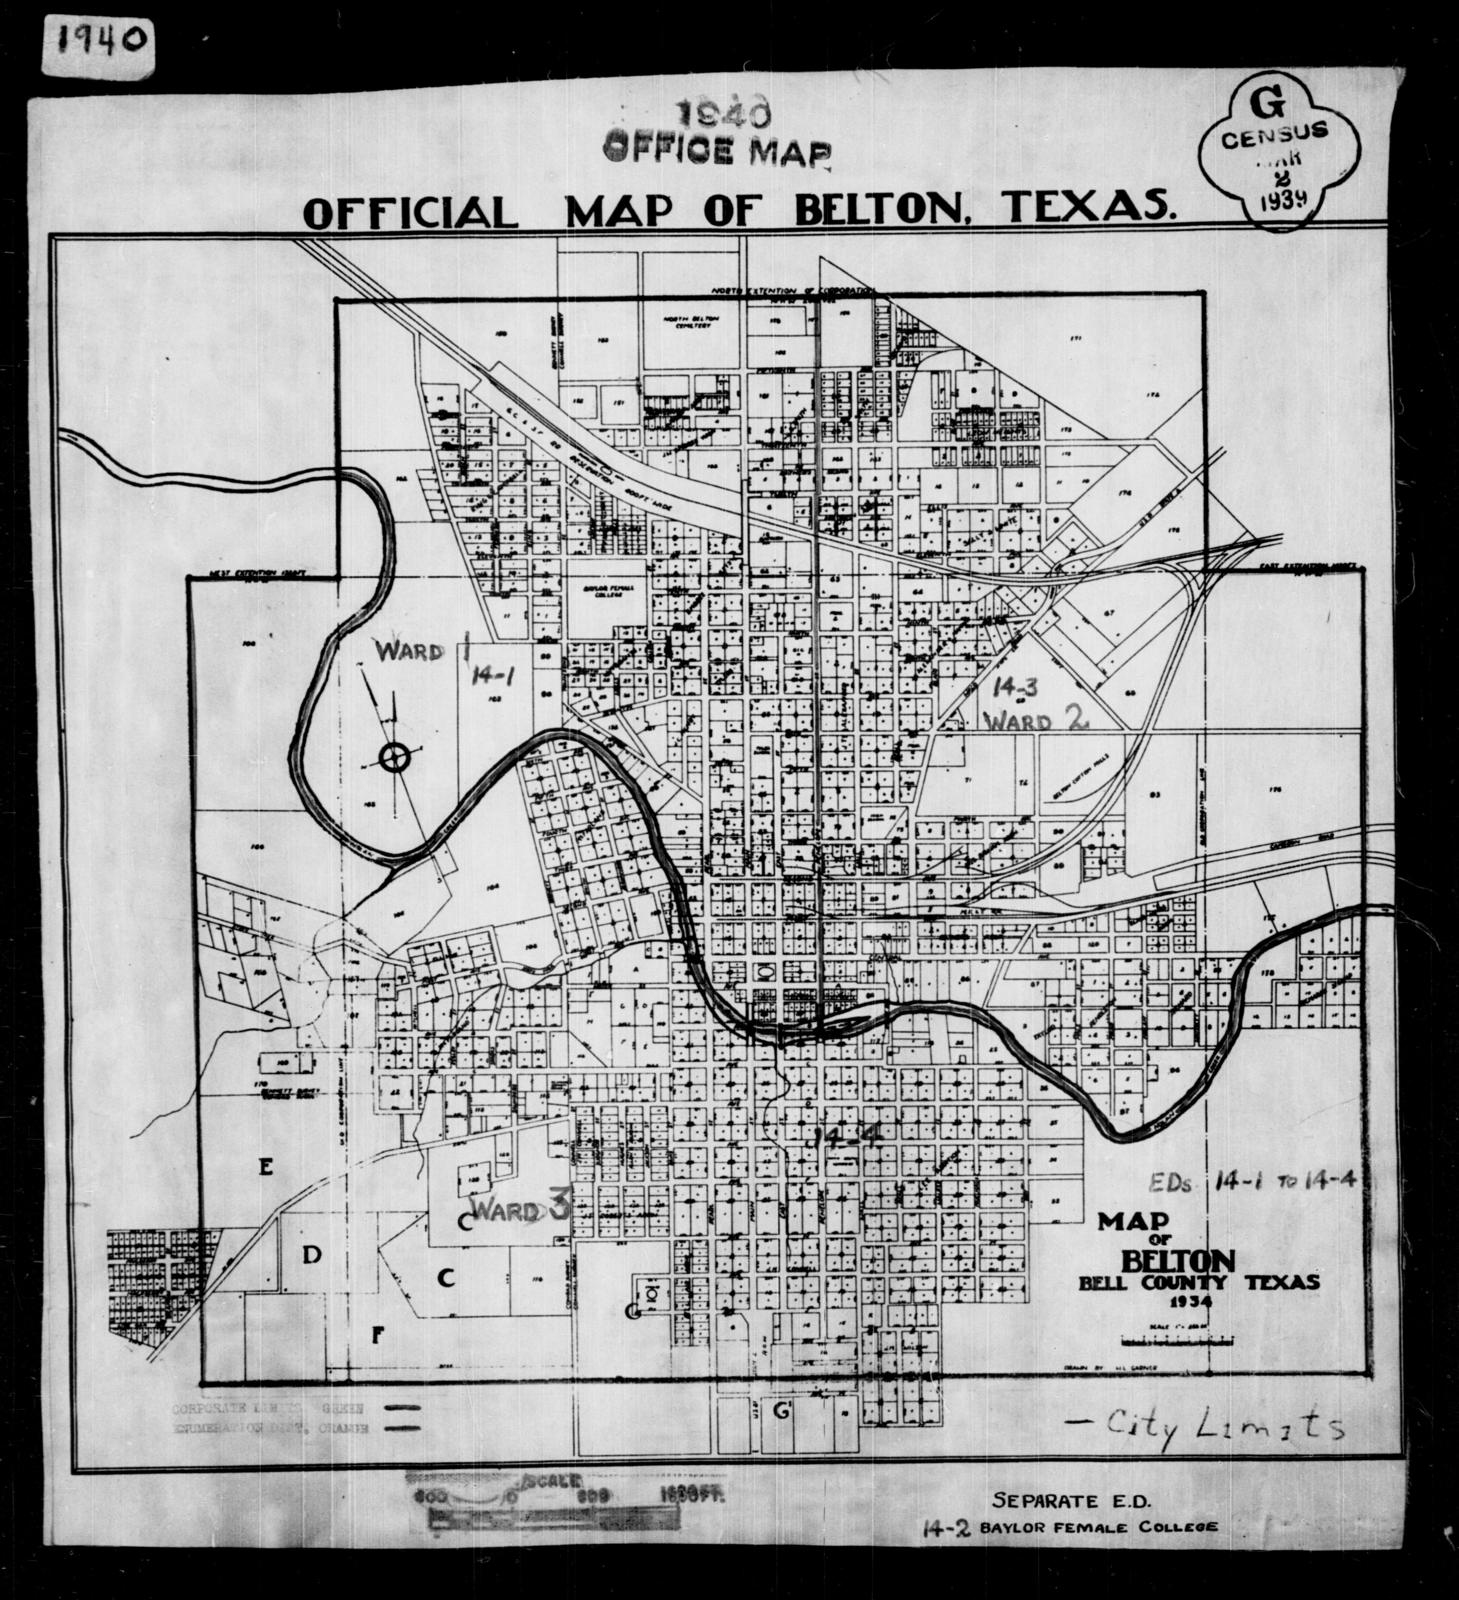 1940 Census Enumeration District Maps - Texas - Bell County - Belton